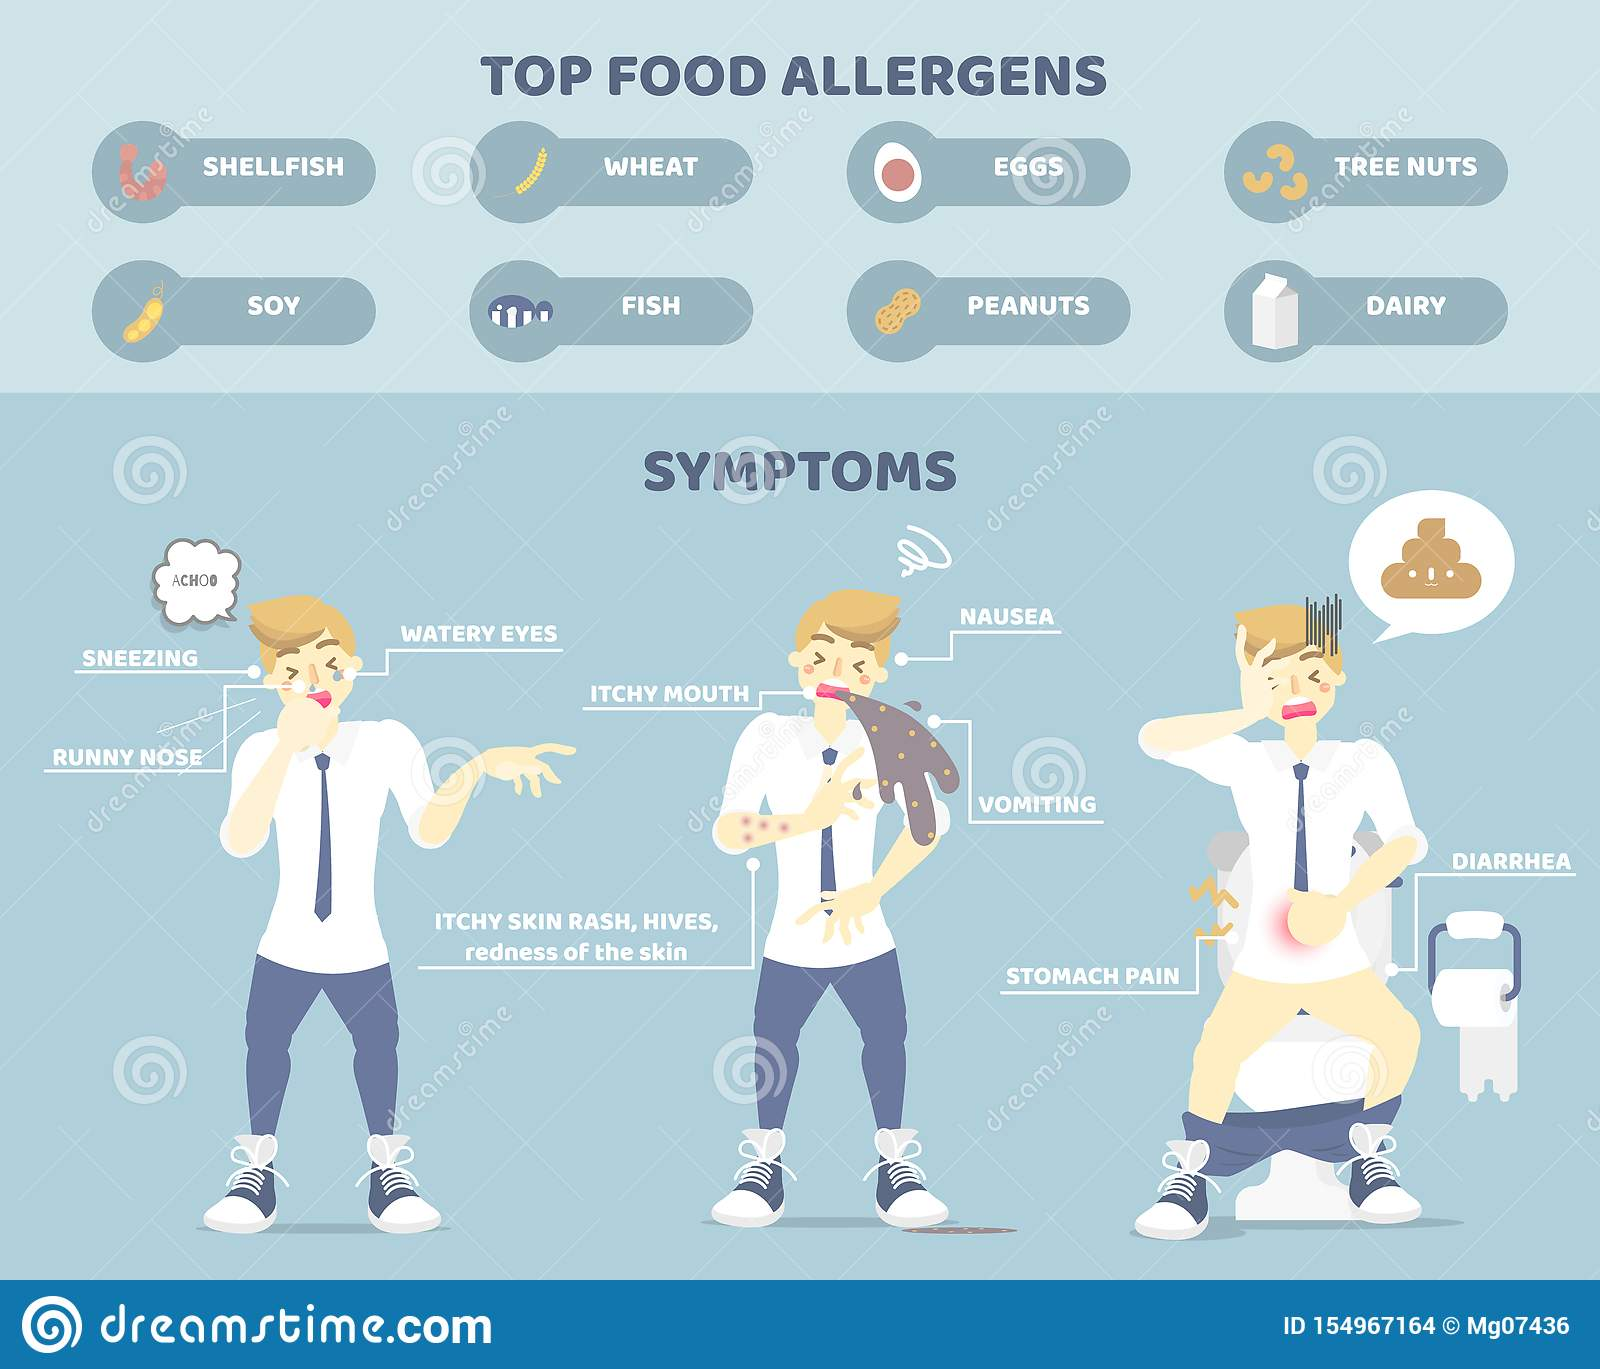 Symptoms of food allergy with man sneezing, vomiting, itchy skin rash, stomach pain and having diarrhea, disease health care